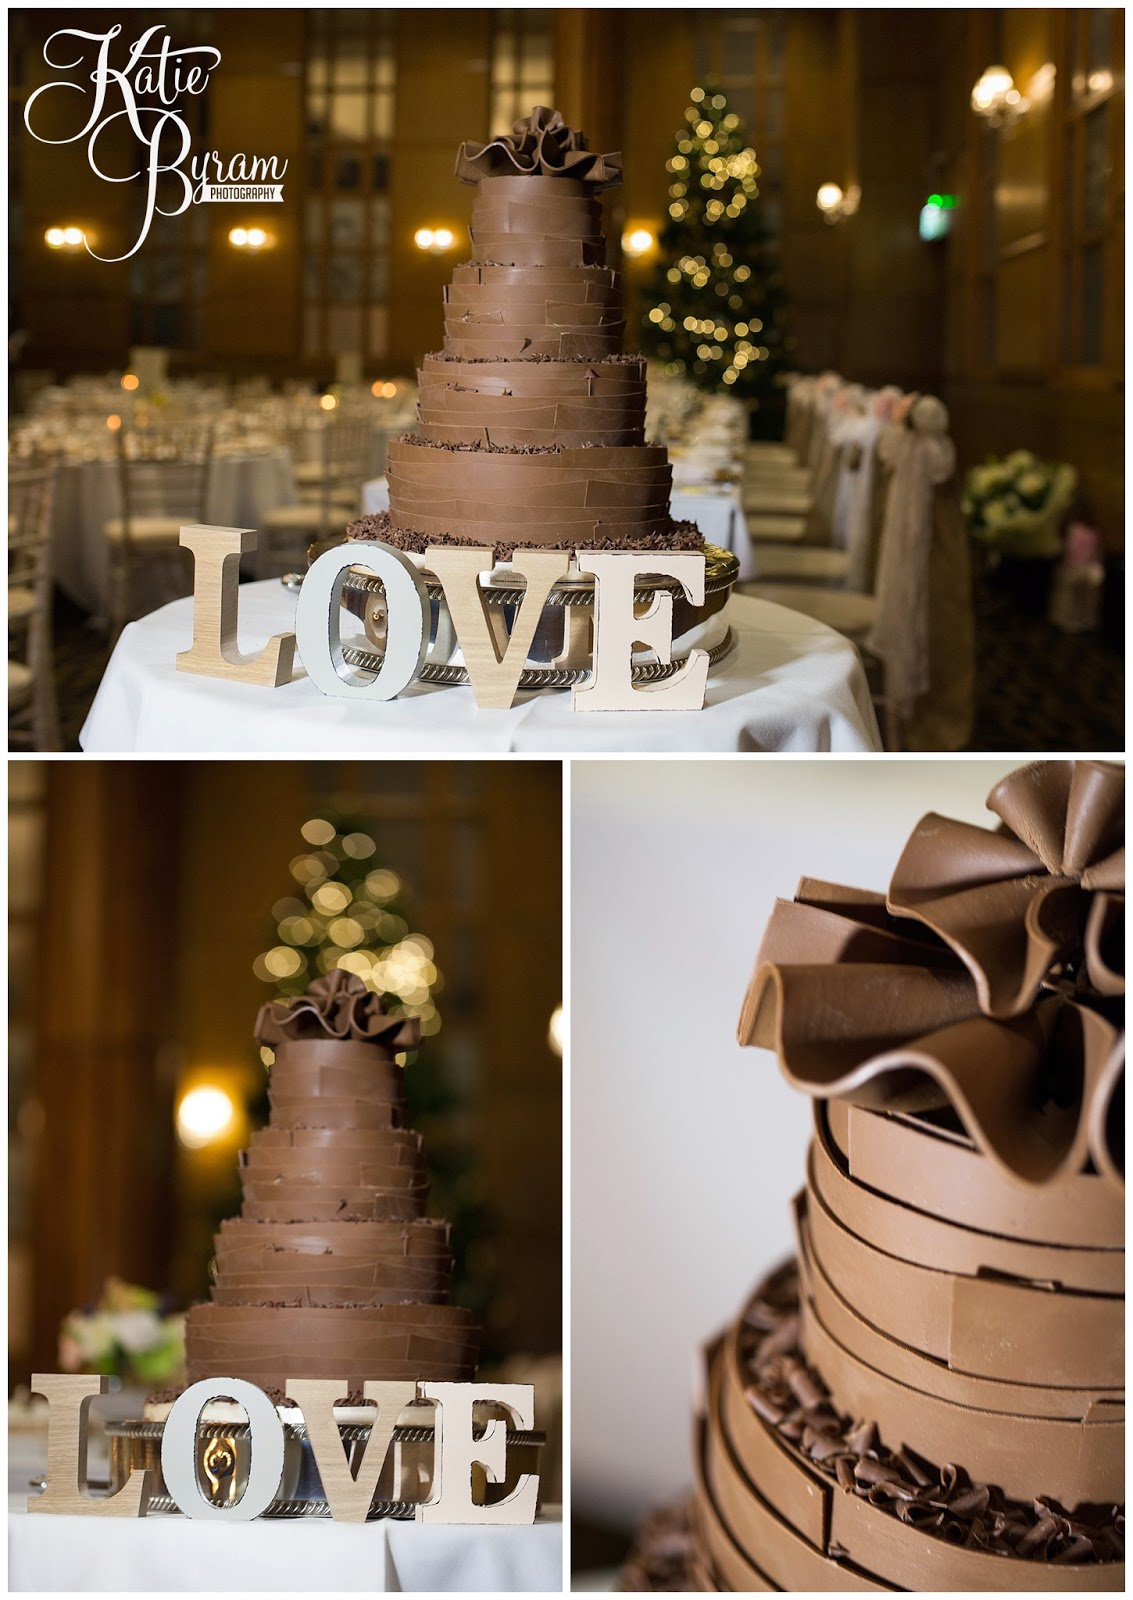 marks and spenders wedding cake, chocolate wedding cake, the vermont hotel, newcastle wedding venue